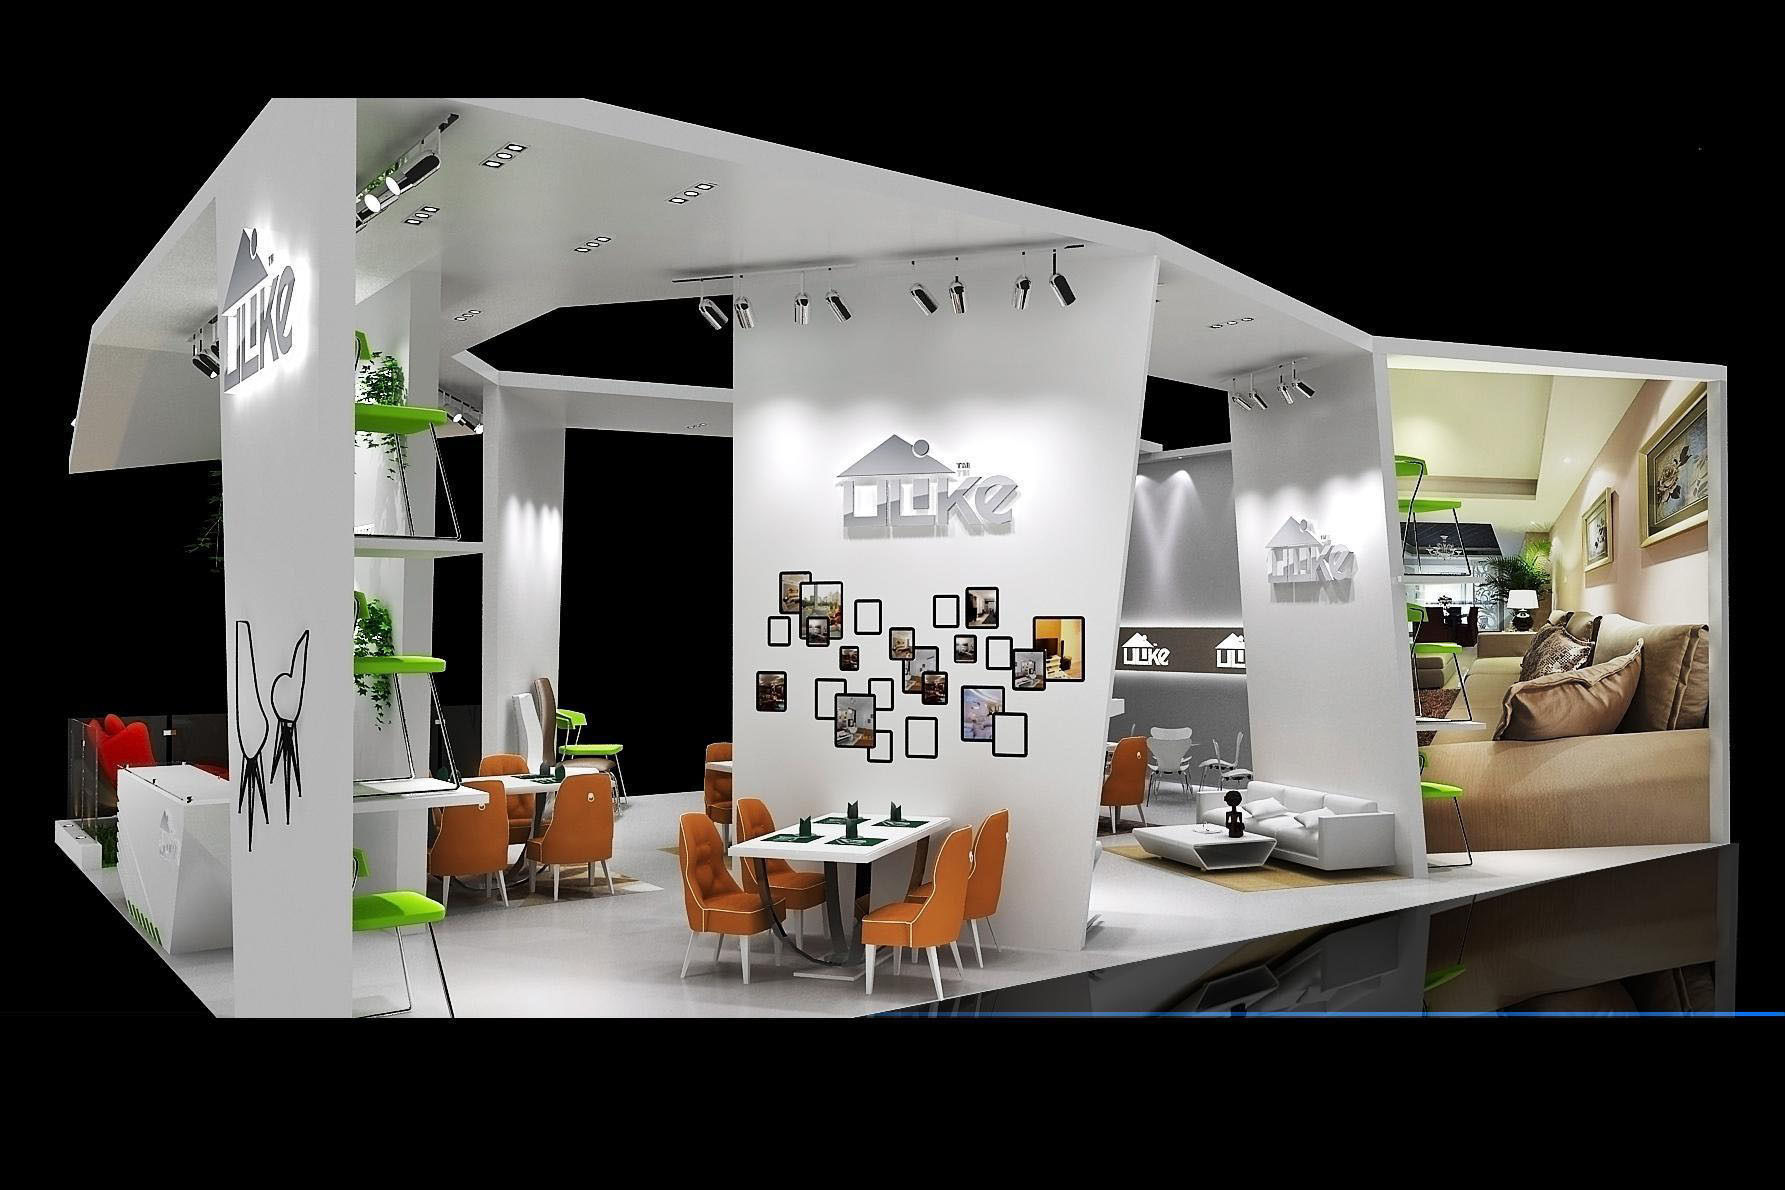 Exhibition area 10x13 3dmax2009 1841 3d model max for 10x13 kitchen layout